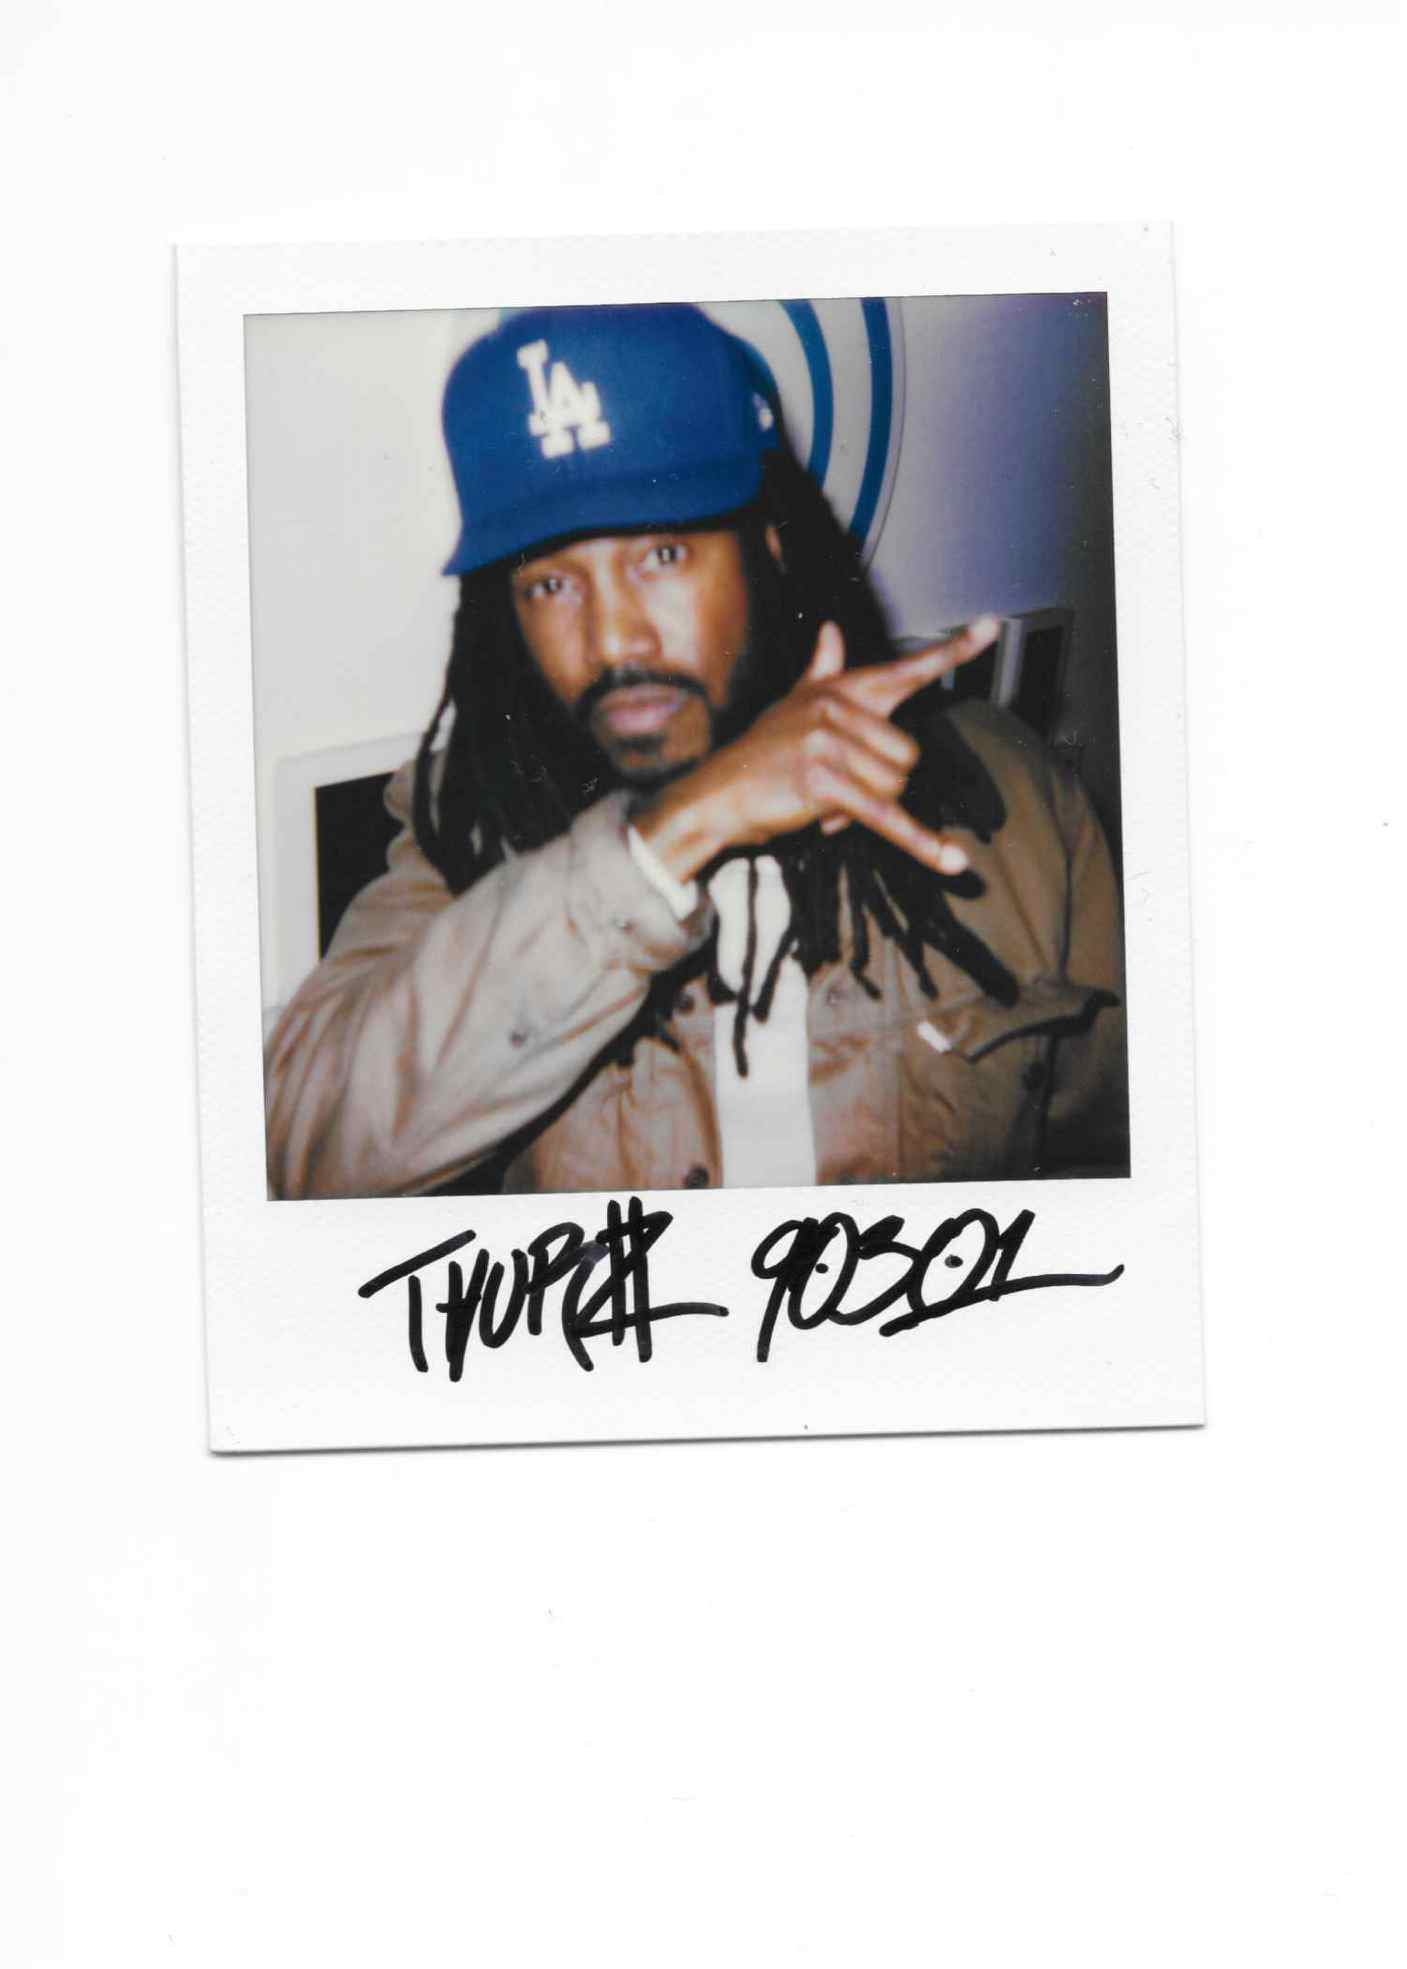 Episode 10 - Thurz Interview - In the latest episode of Overly Conversated, we chop it up with LA OG Thurz about coming up with U-N-I, his own solo career and now working with Aftermath and Dr. Dre. Some real gems here.